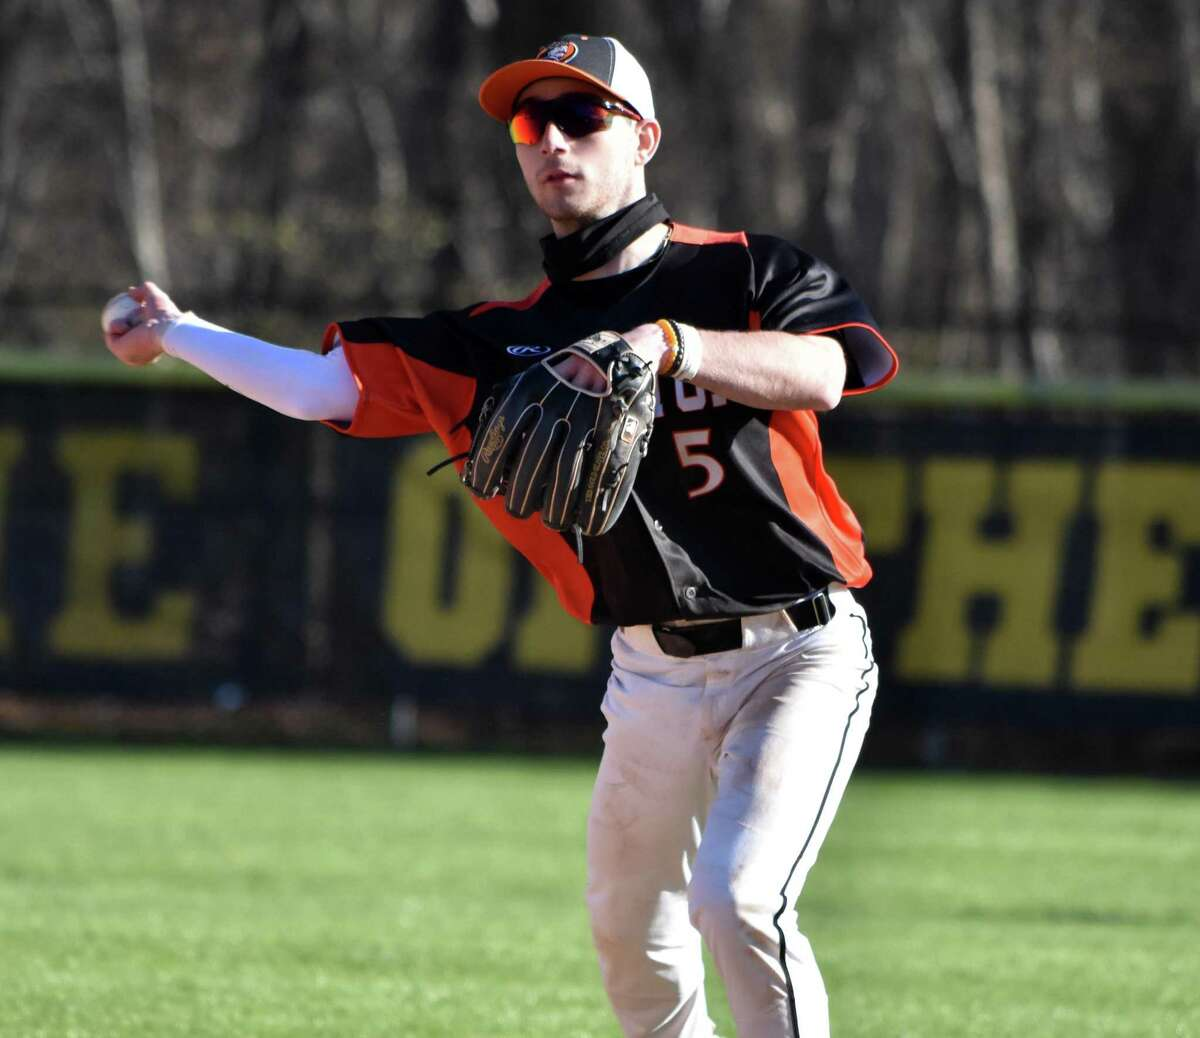 Shelton's John Riccio throws the ball to first against Hand in a baseball game at Hand high school on Monday, April 26, 2021.